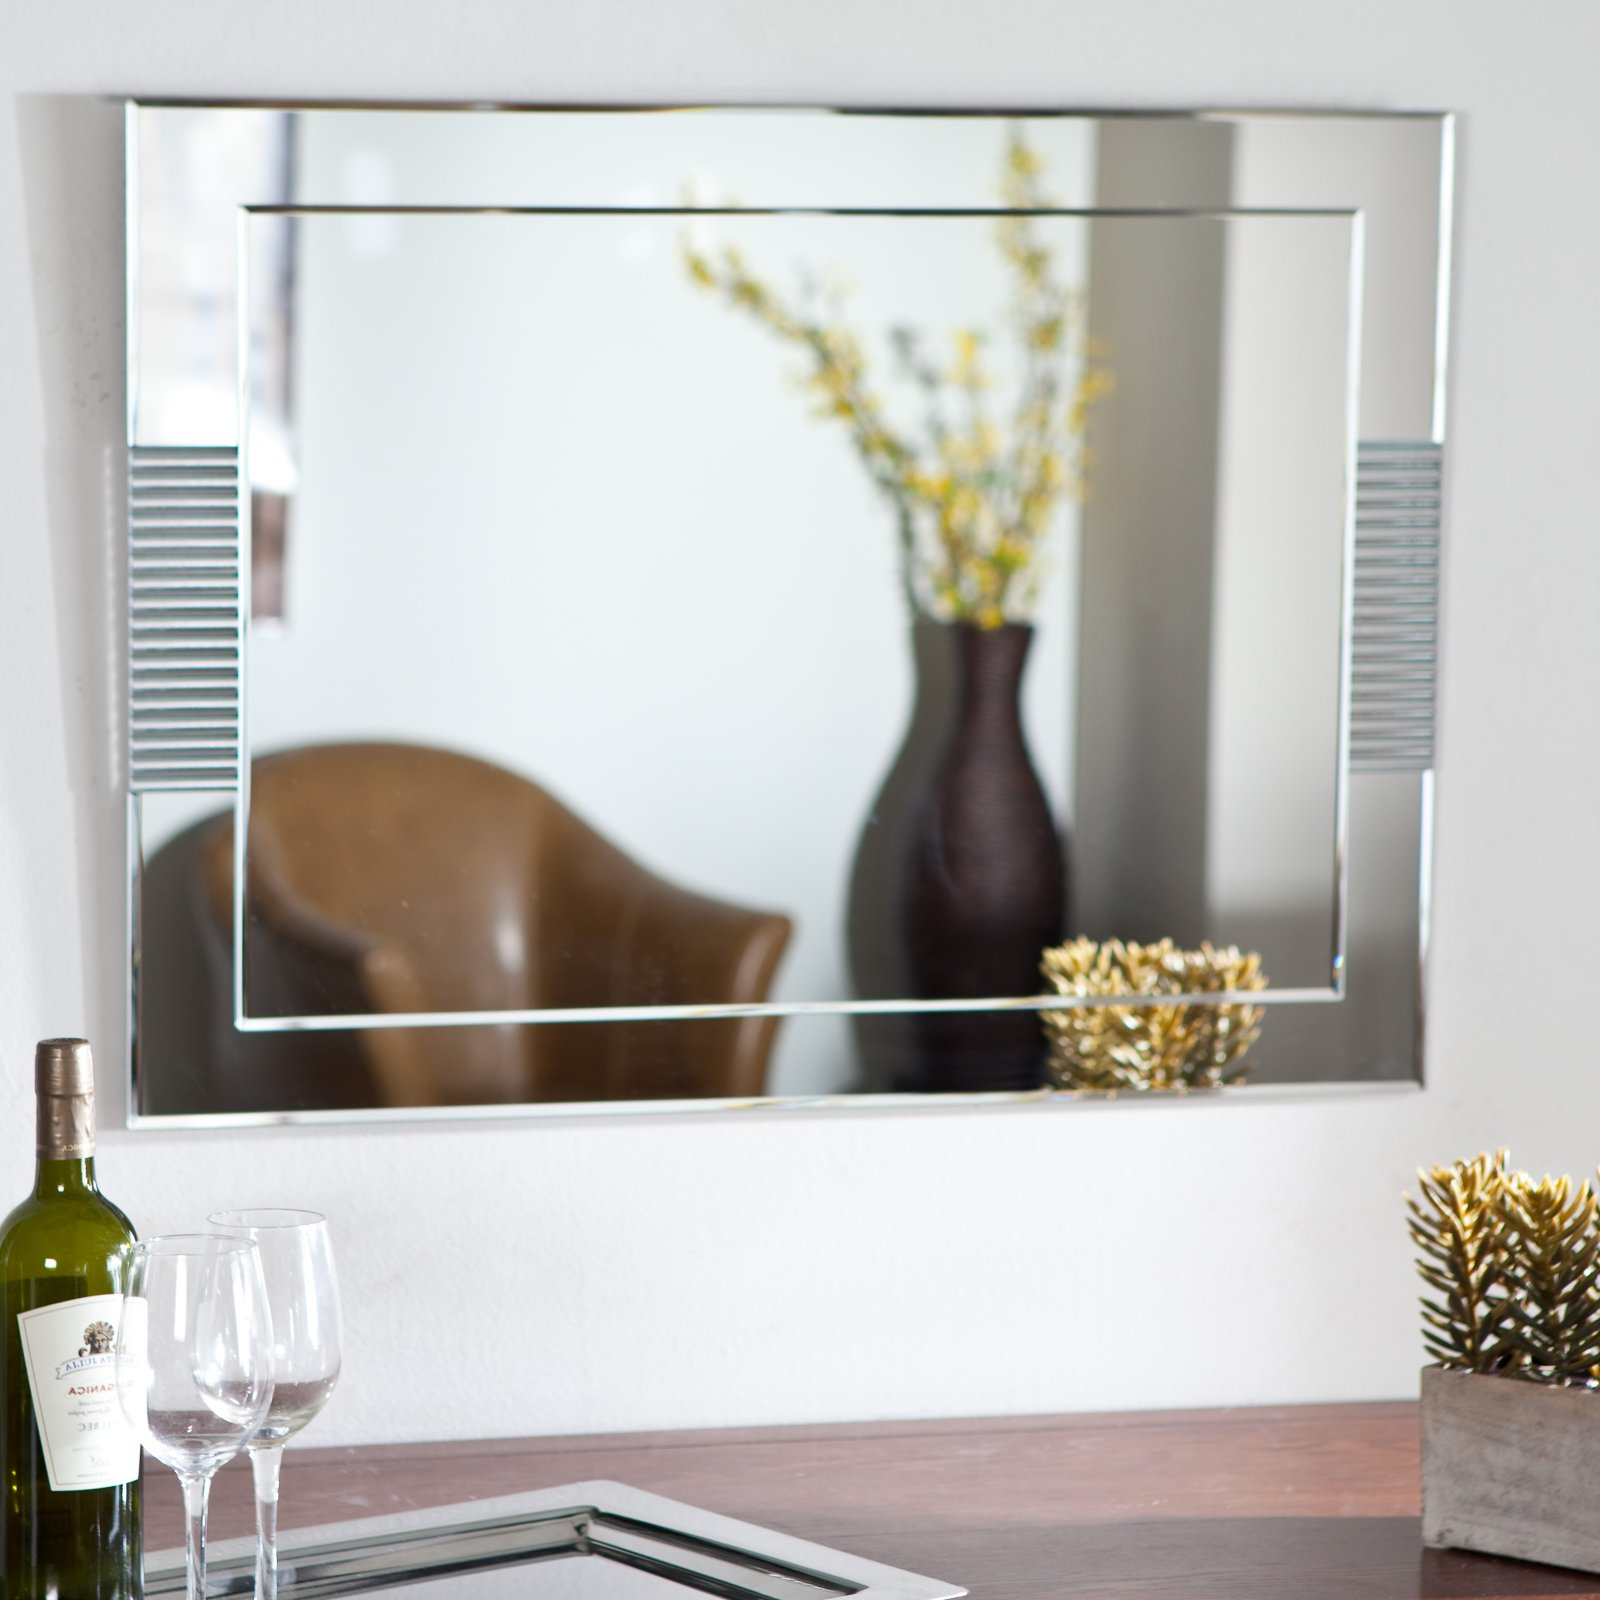 Big Frameless Wall Mirrors With Preferred Dã©cor Wonderland Francisca Large Frameless Wall Mirror – (View 3 of 20)